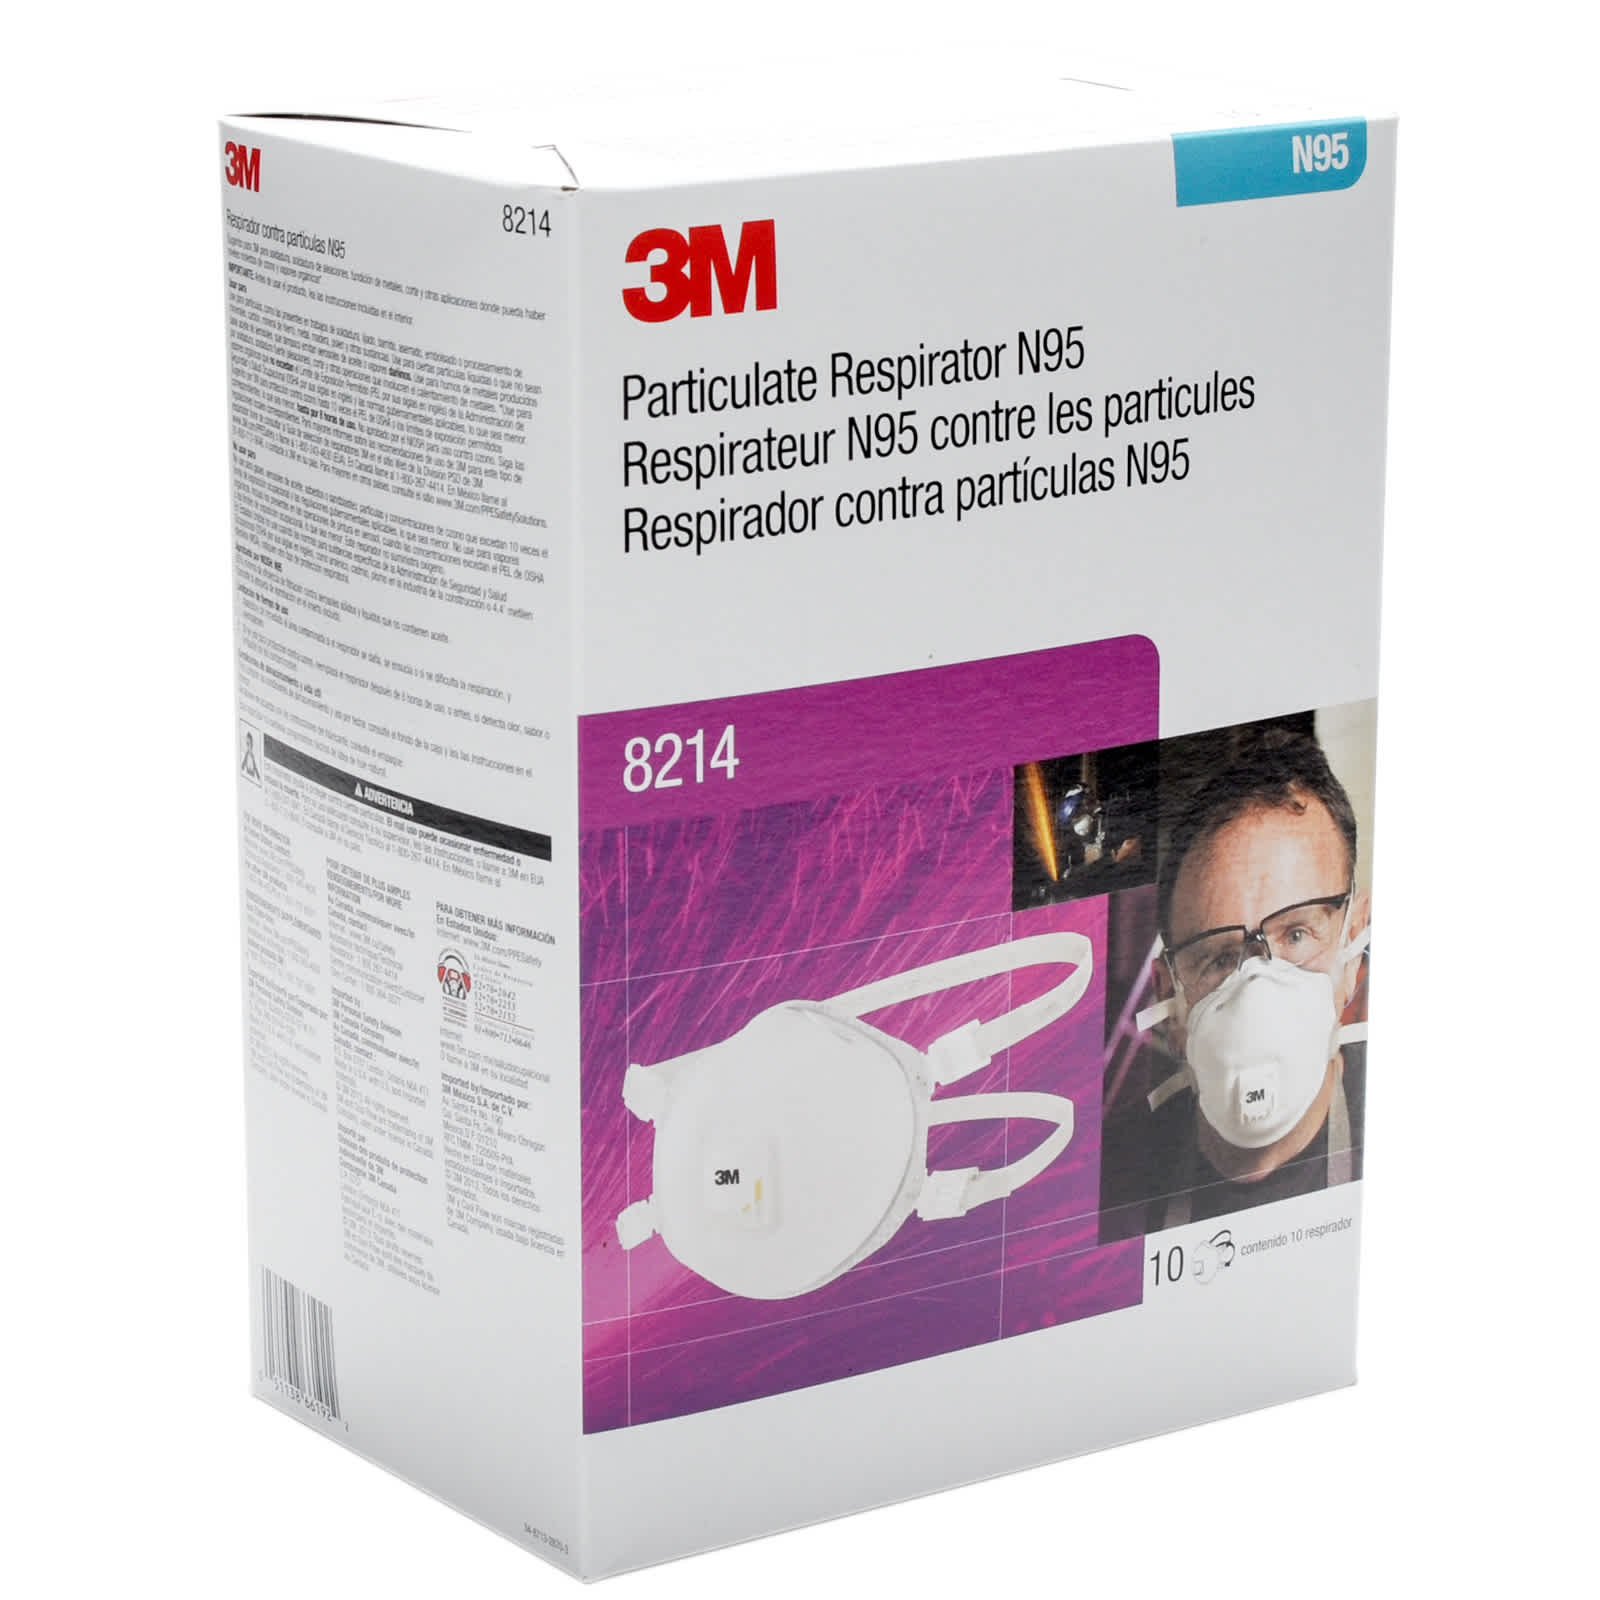 3m n95 mask 8210 expiry date